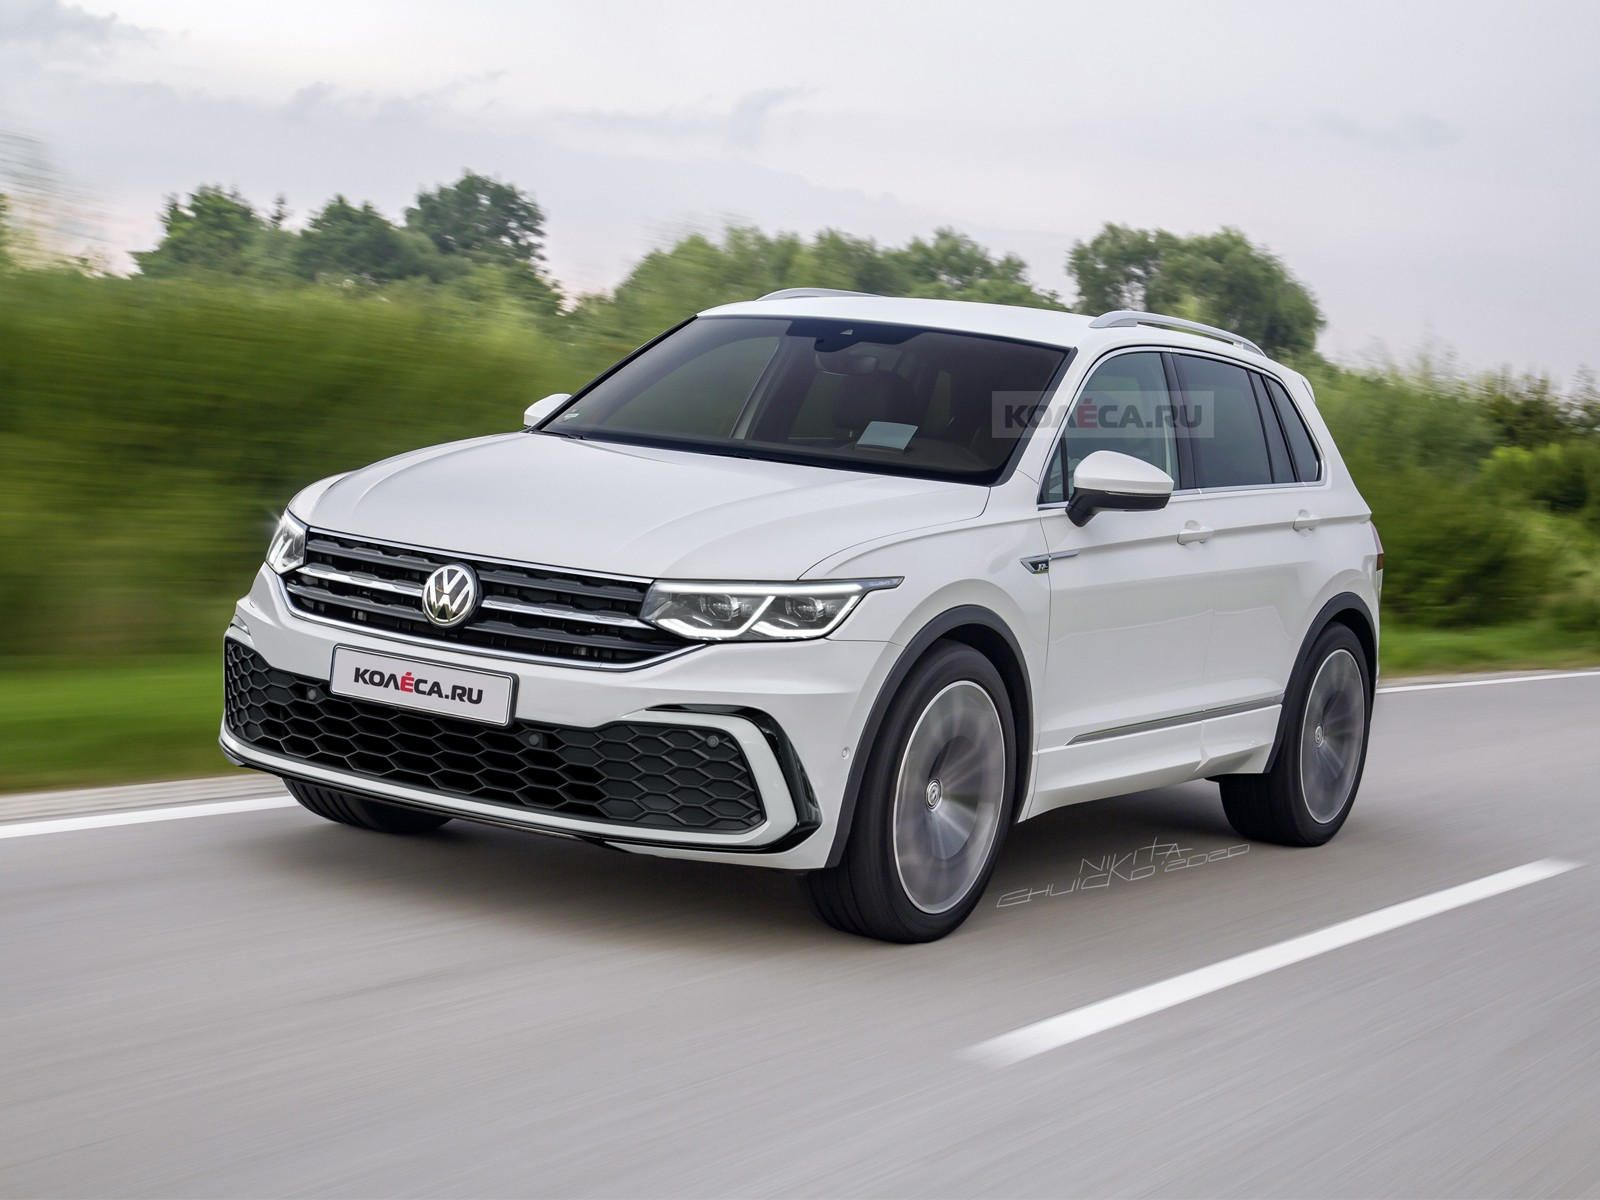 This Is Our Best Look Yet At The 2021 Vw Tiguan We Re Expecting The Volkswagen Tiguan Facelift To Debut At Geneva In March In 2020 Volkswagen Suv Car Review